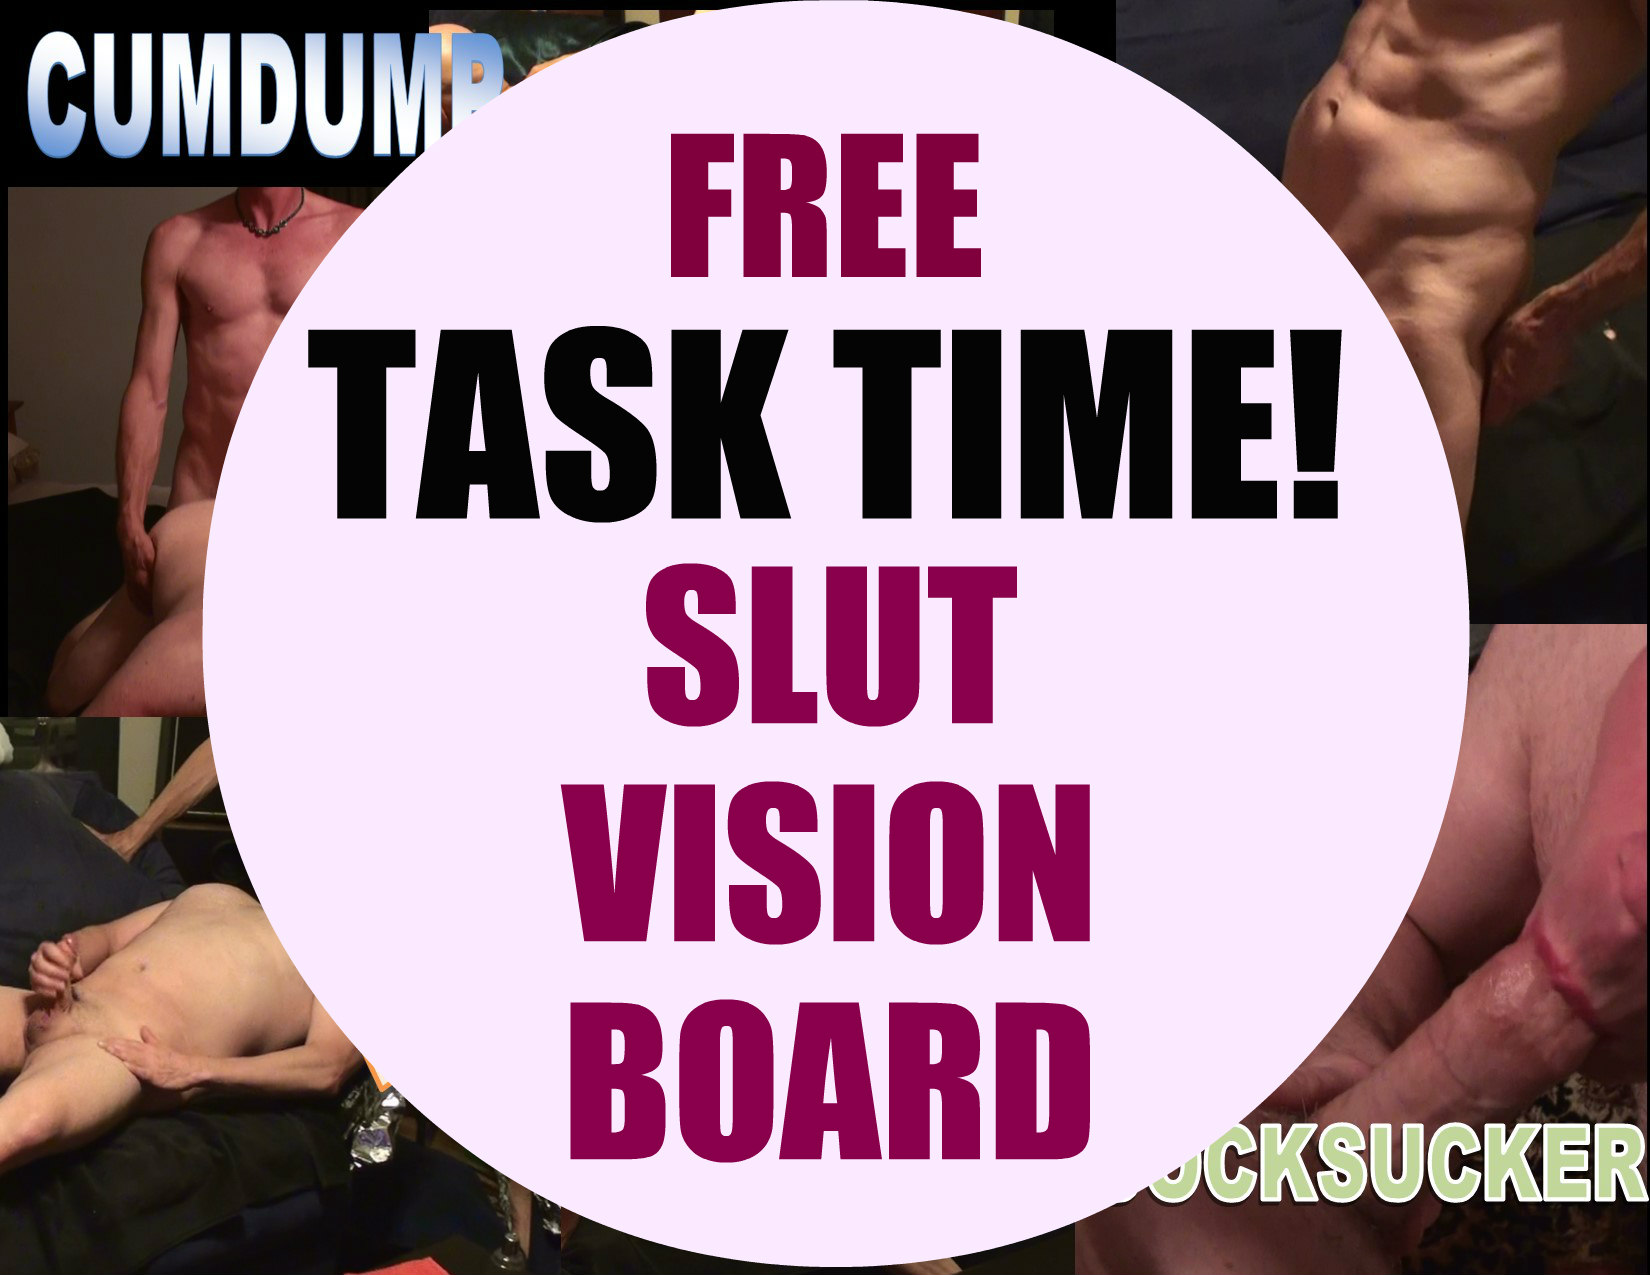 Cumdump Vision Board!